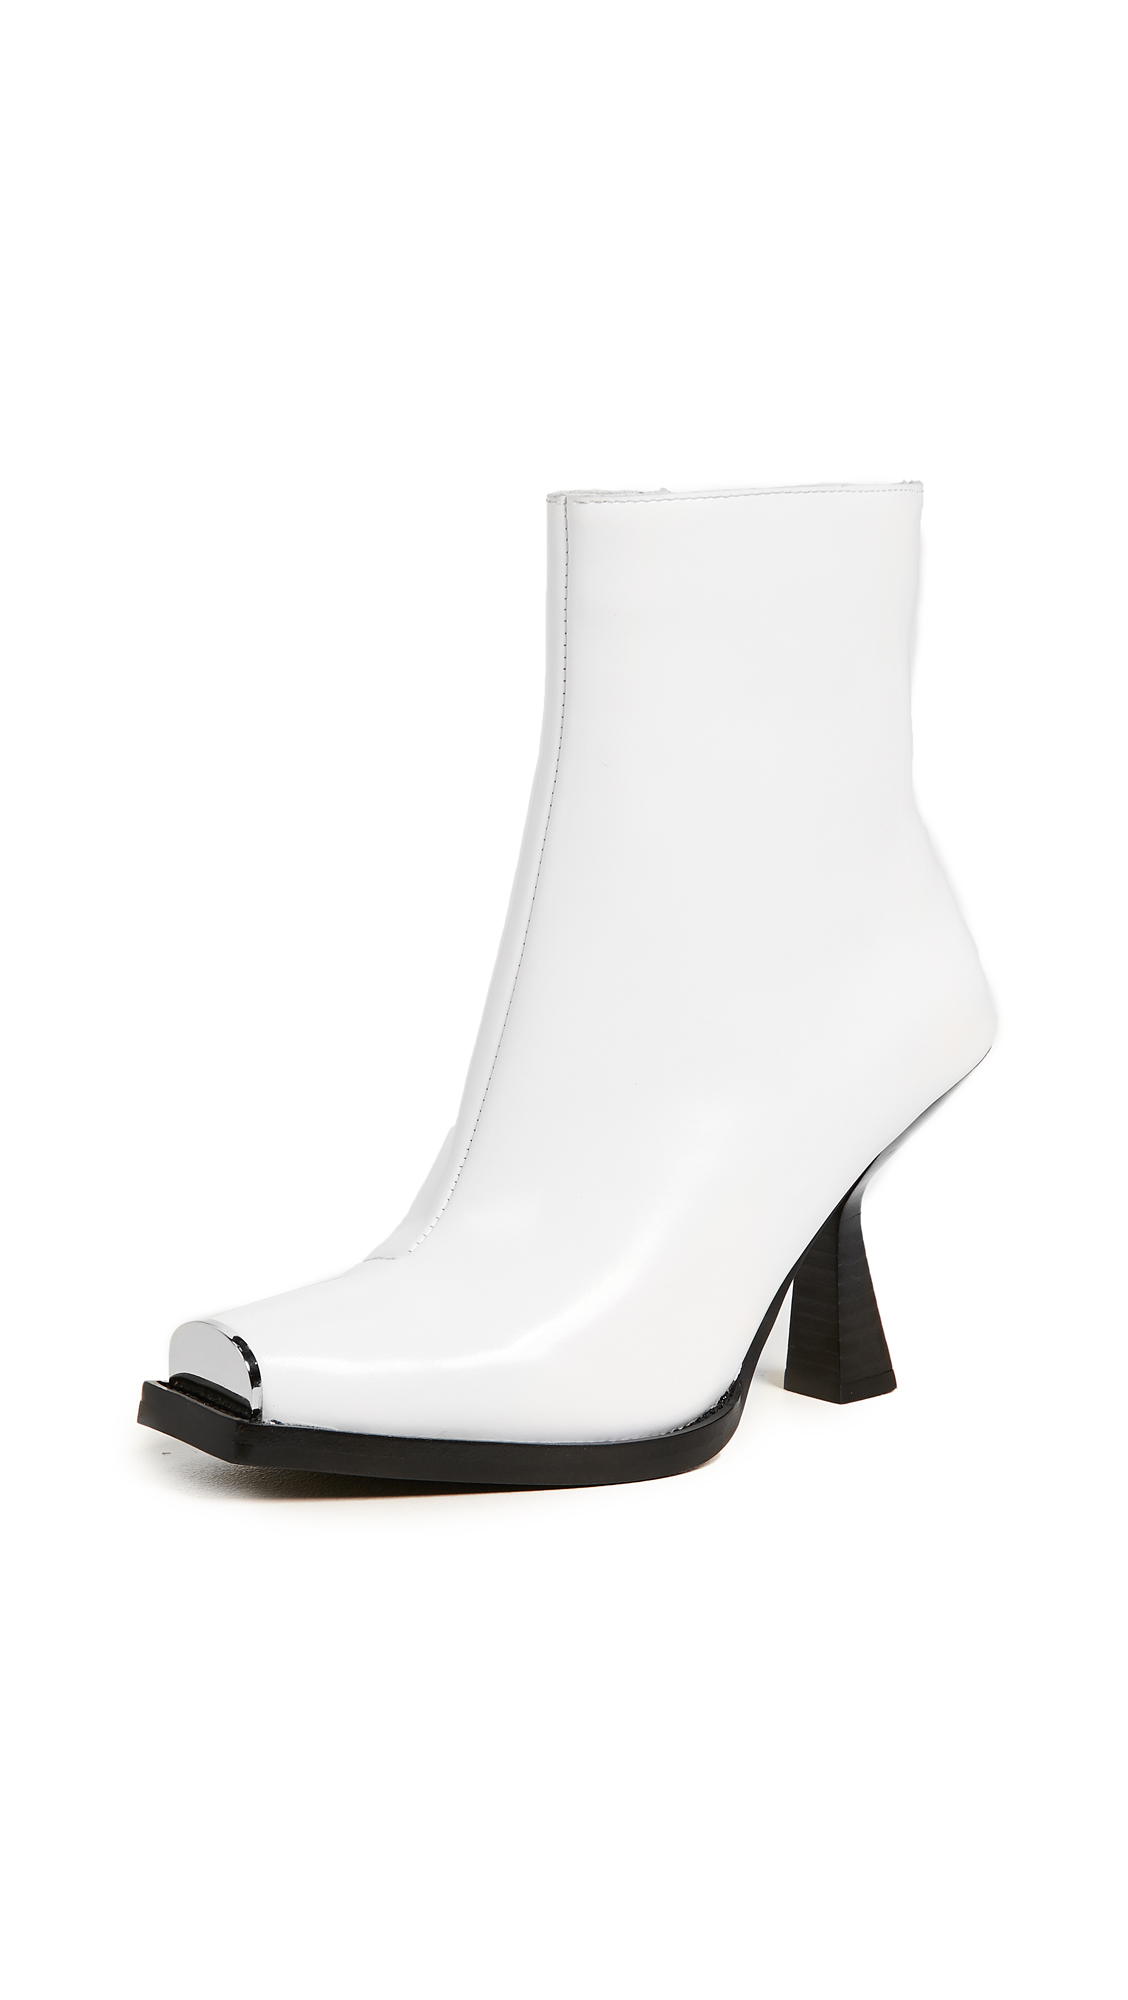 Jeffrey Campbell Hiatus Square Toe Boots - White Box